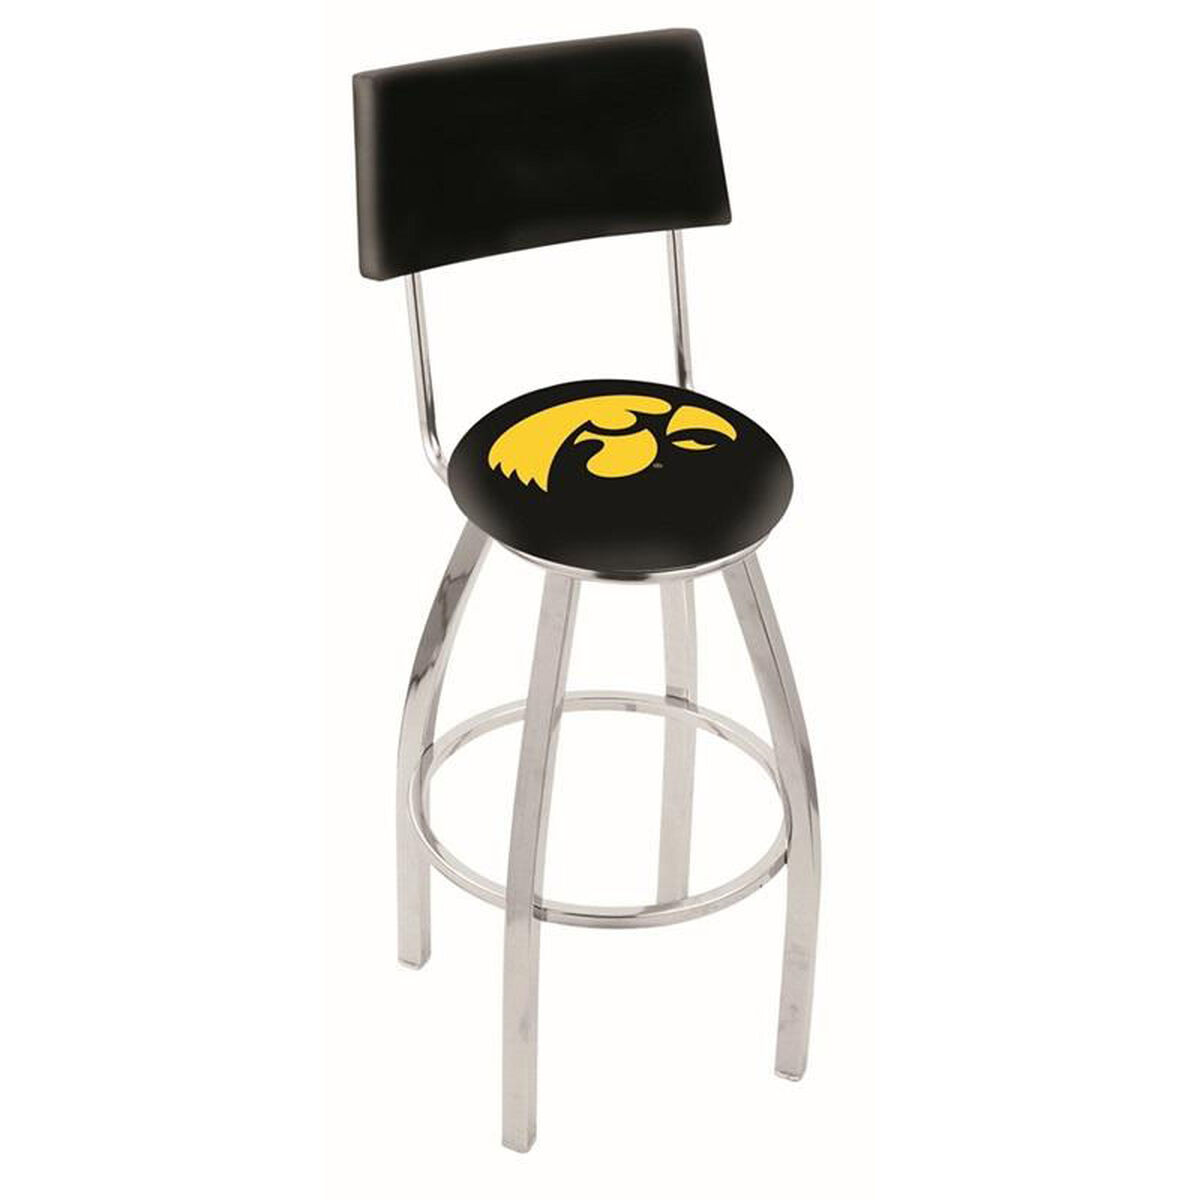 Collegiate Football Swivel Stool L8c425iowaun